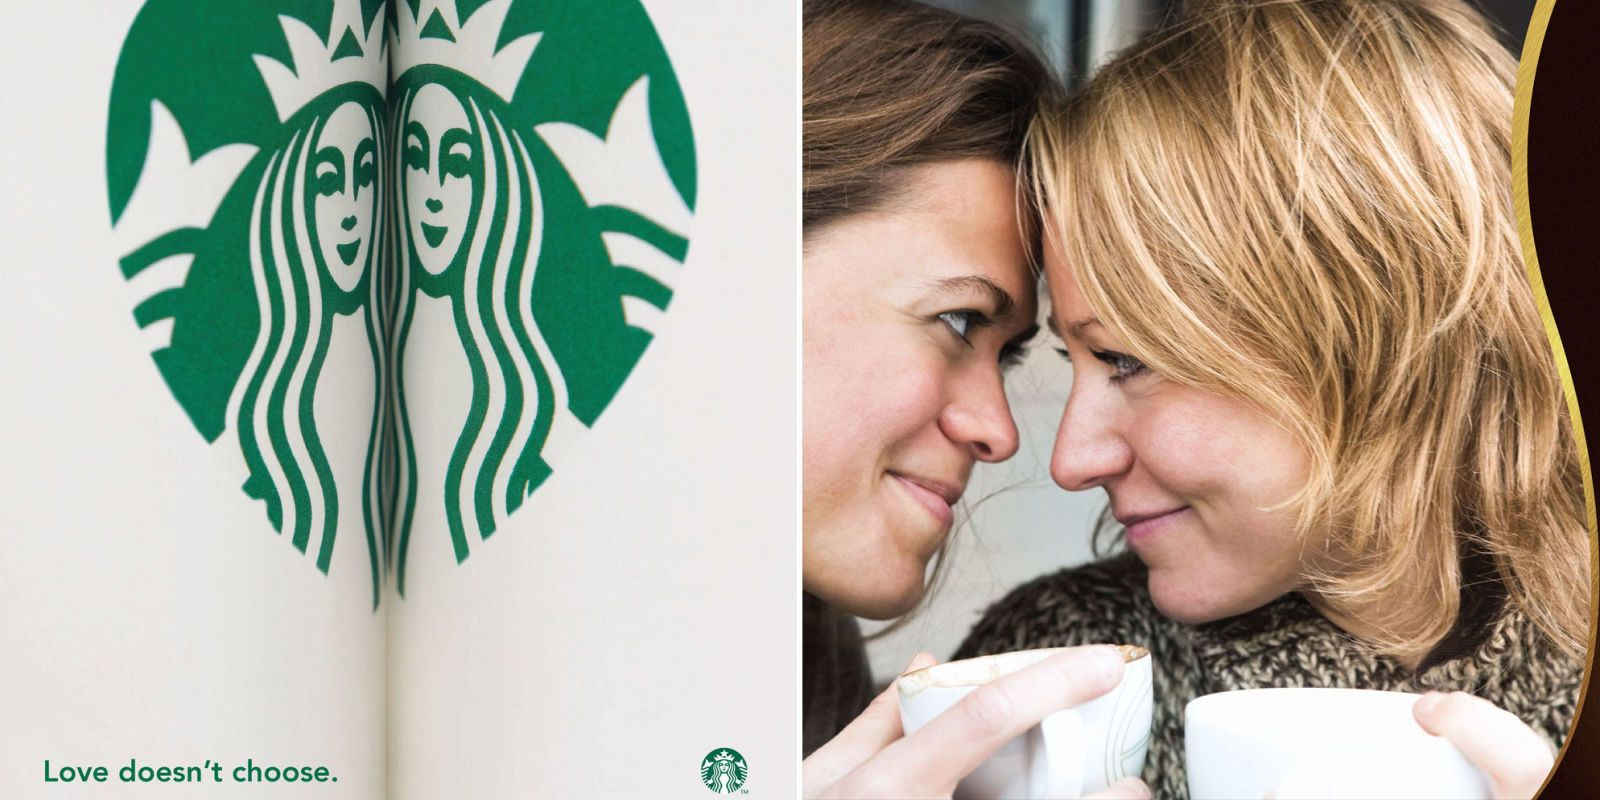 These Famous Ads Reimagined With Lesbian Couples Are The Best Thing You'll See All Day